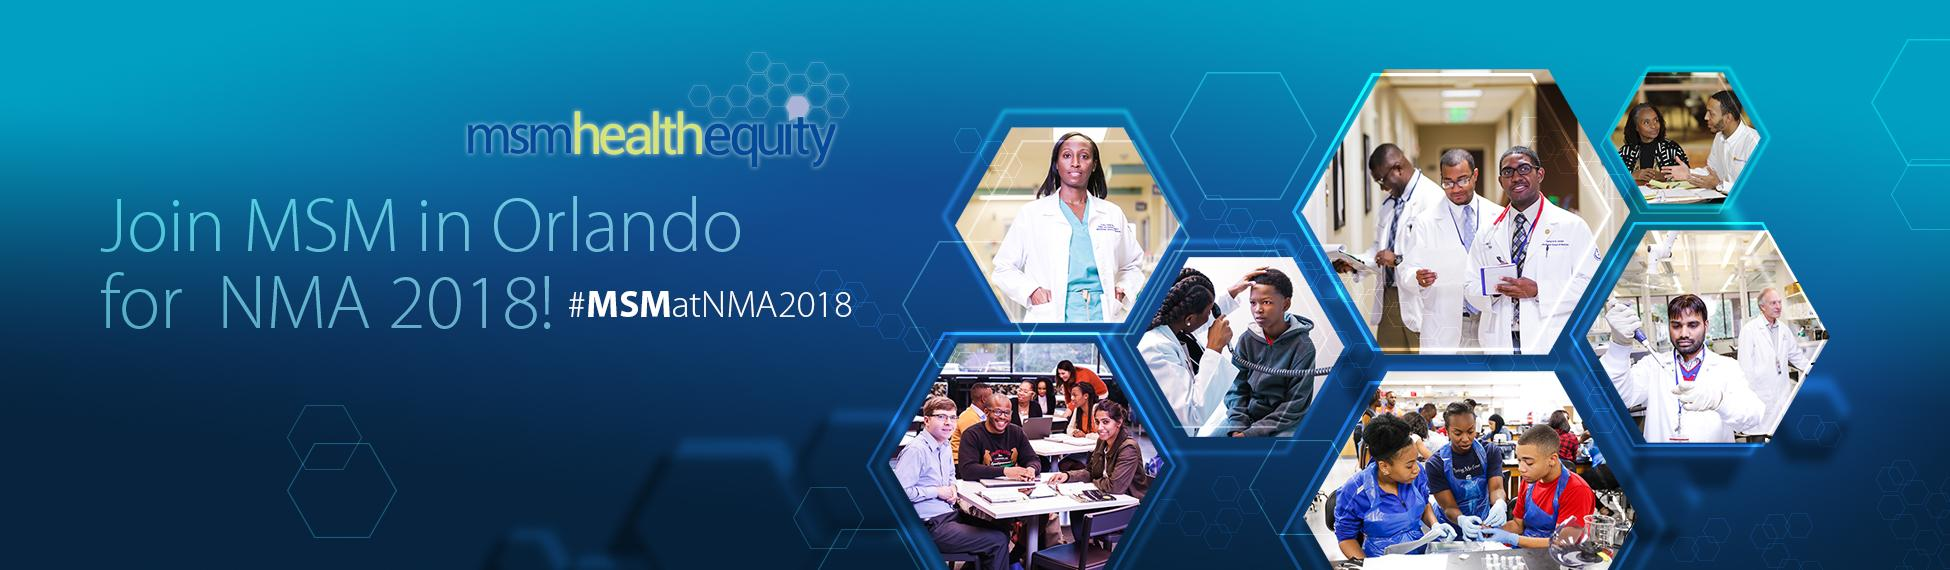 Join MSM in Orlando for NMA 2018!